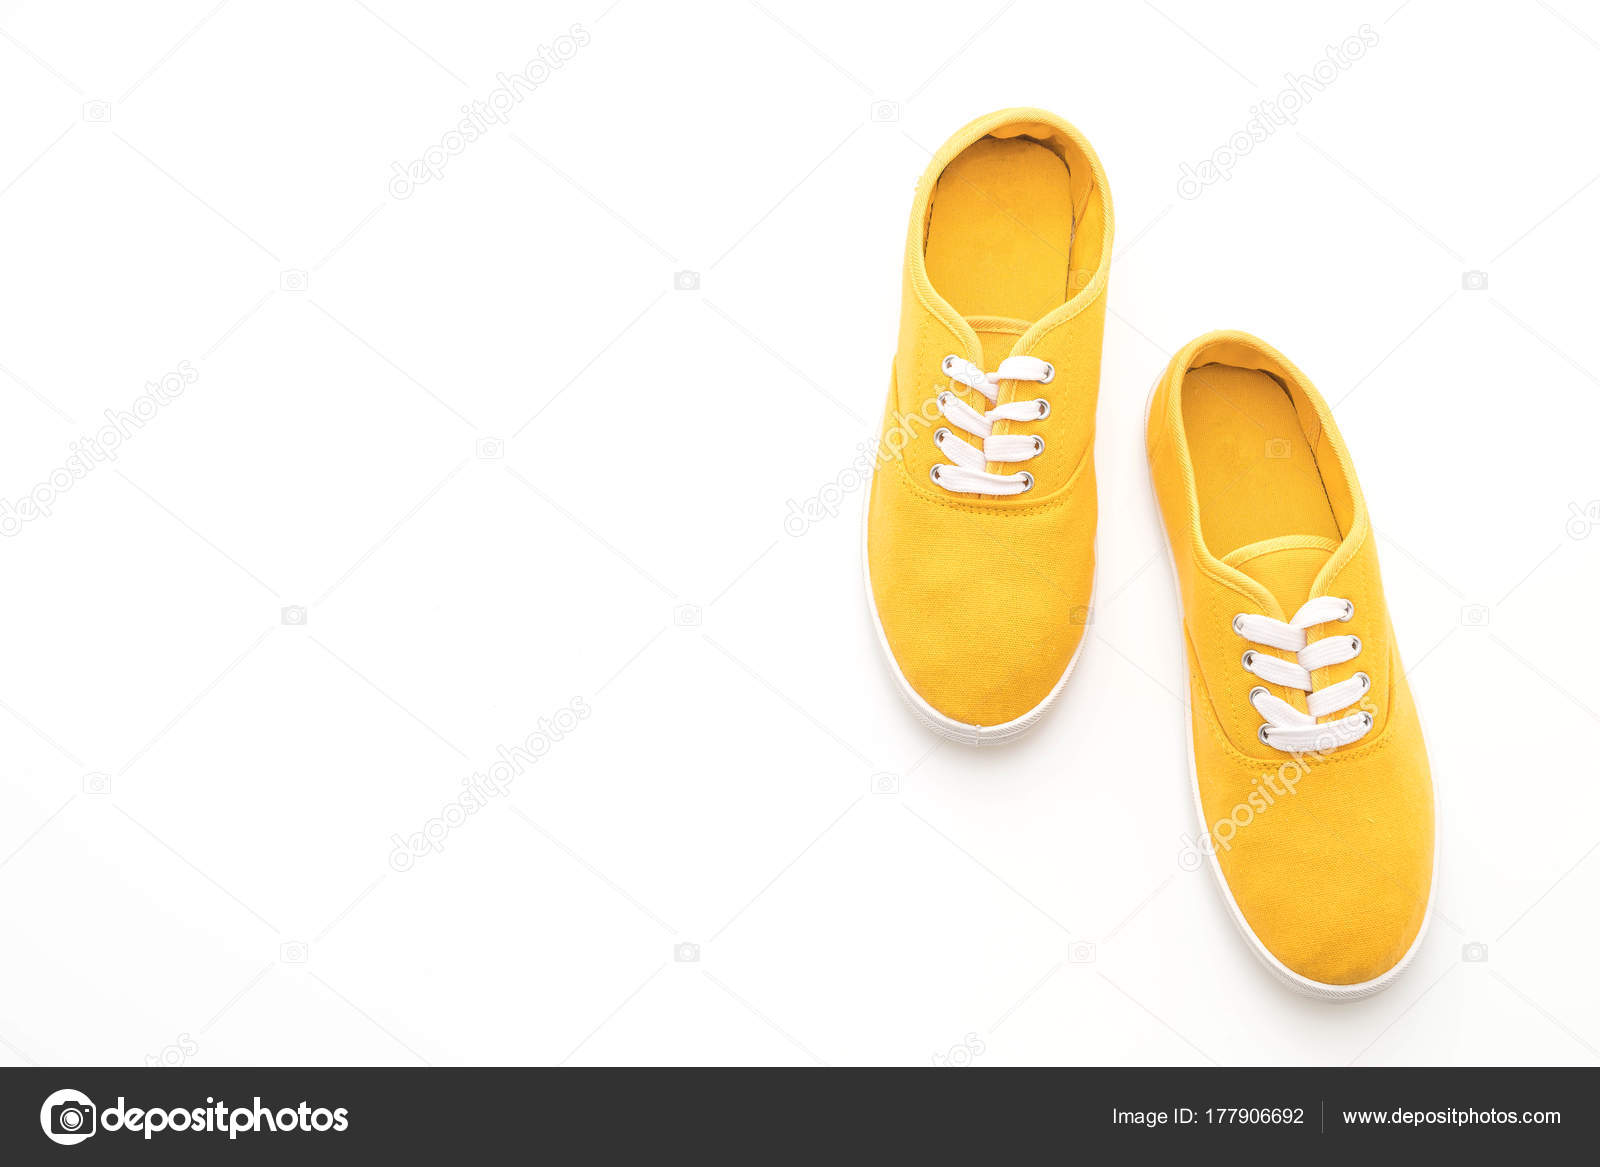 70bf23b2340d96 yellow sneakers on white background — Stock Photo © topntp  177906692